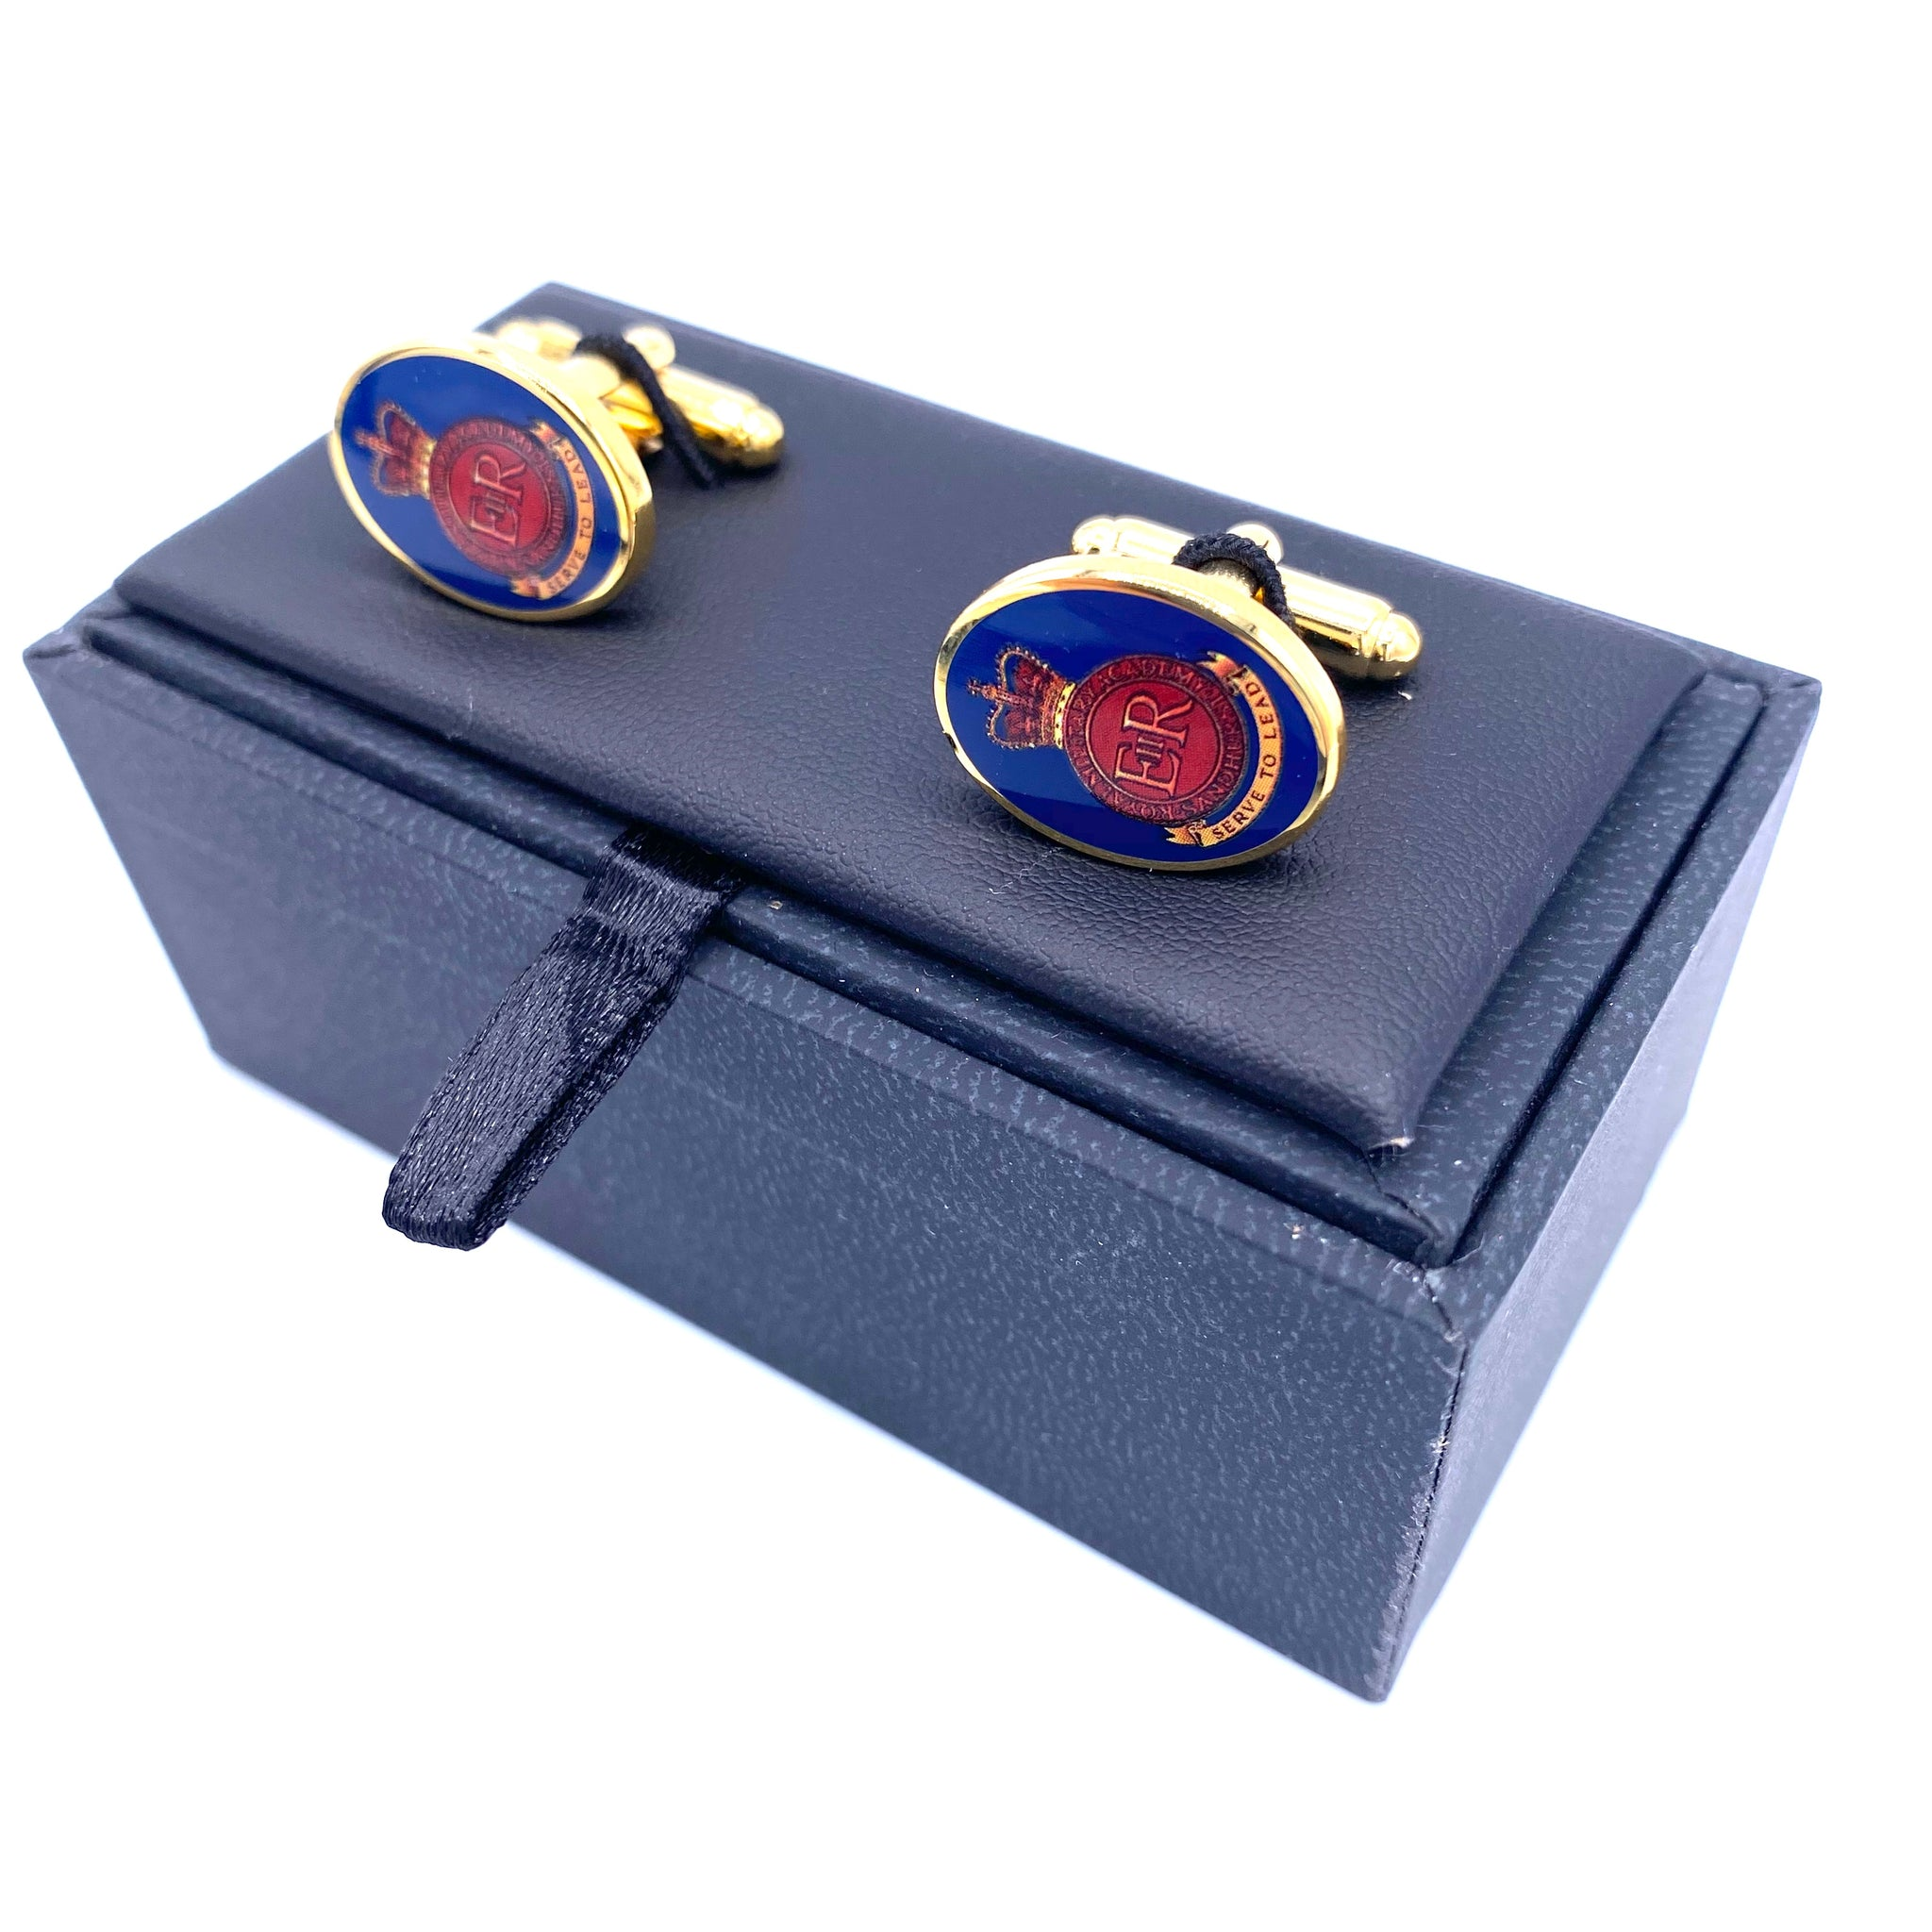 Cufflinks - RMAS Crested -Bar